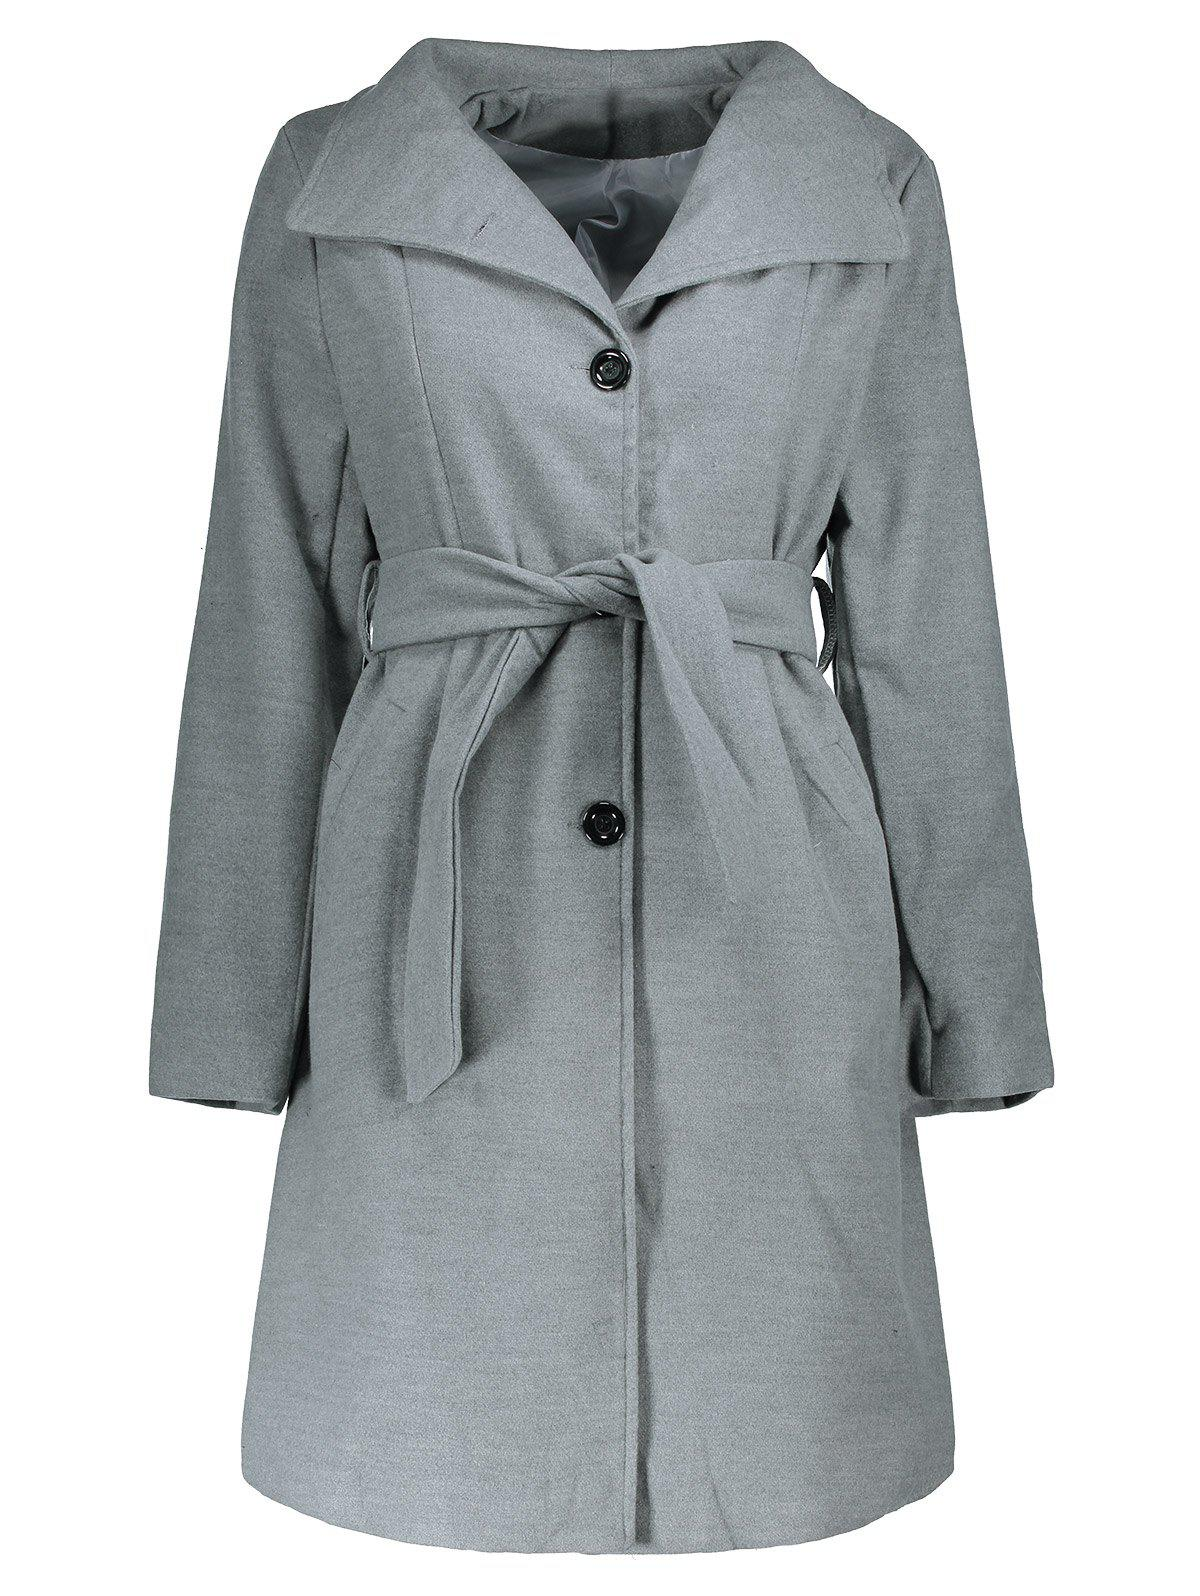 Hot Stylish Stand Collar Long Sleeve Pure Color Self-Tie Coat For Women